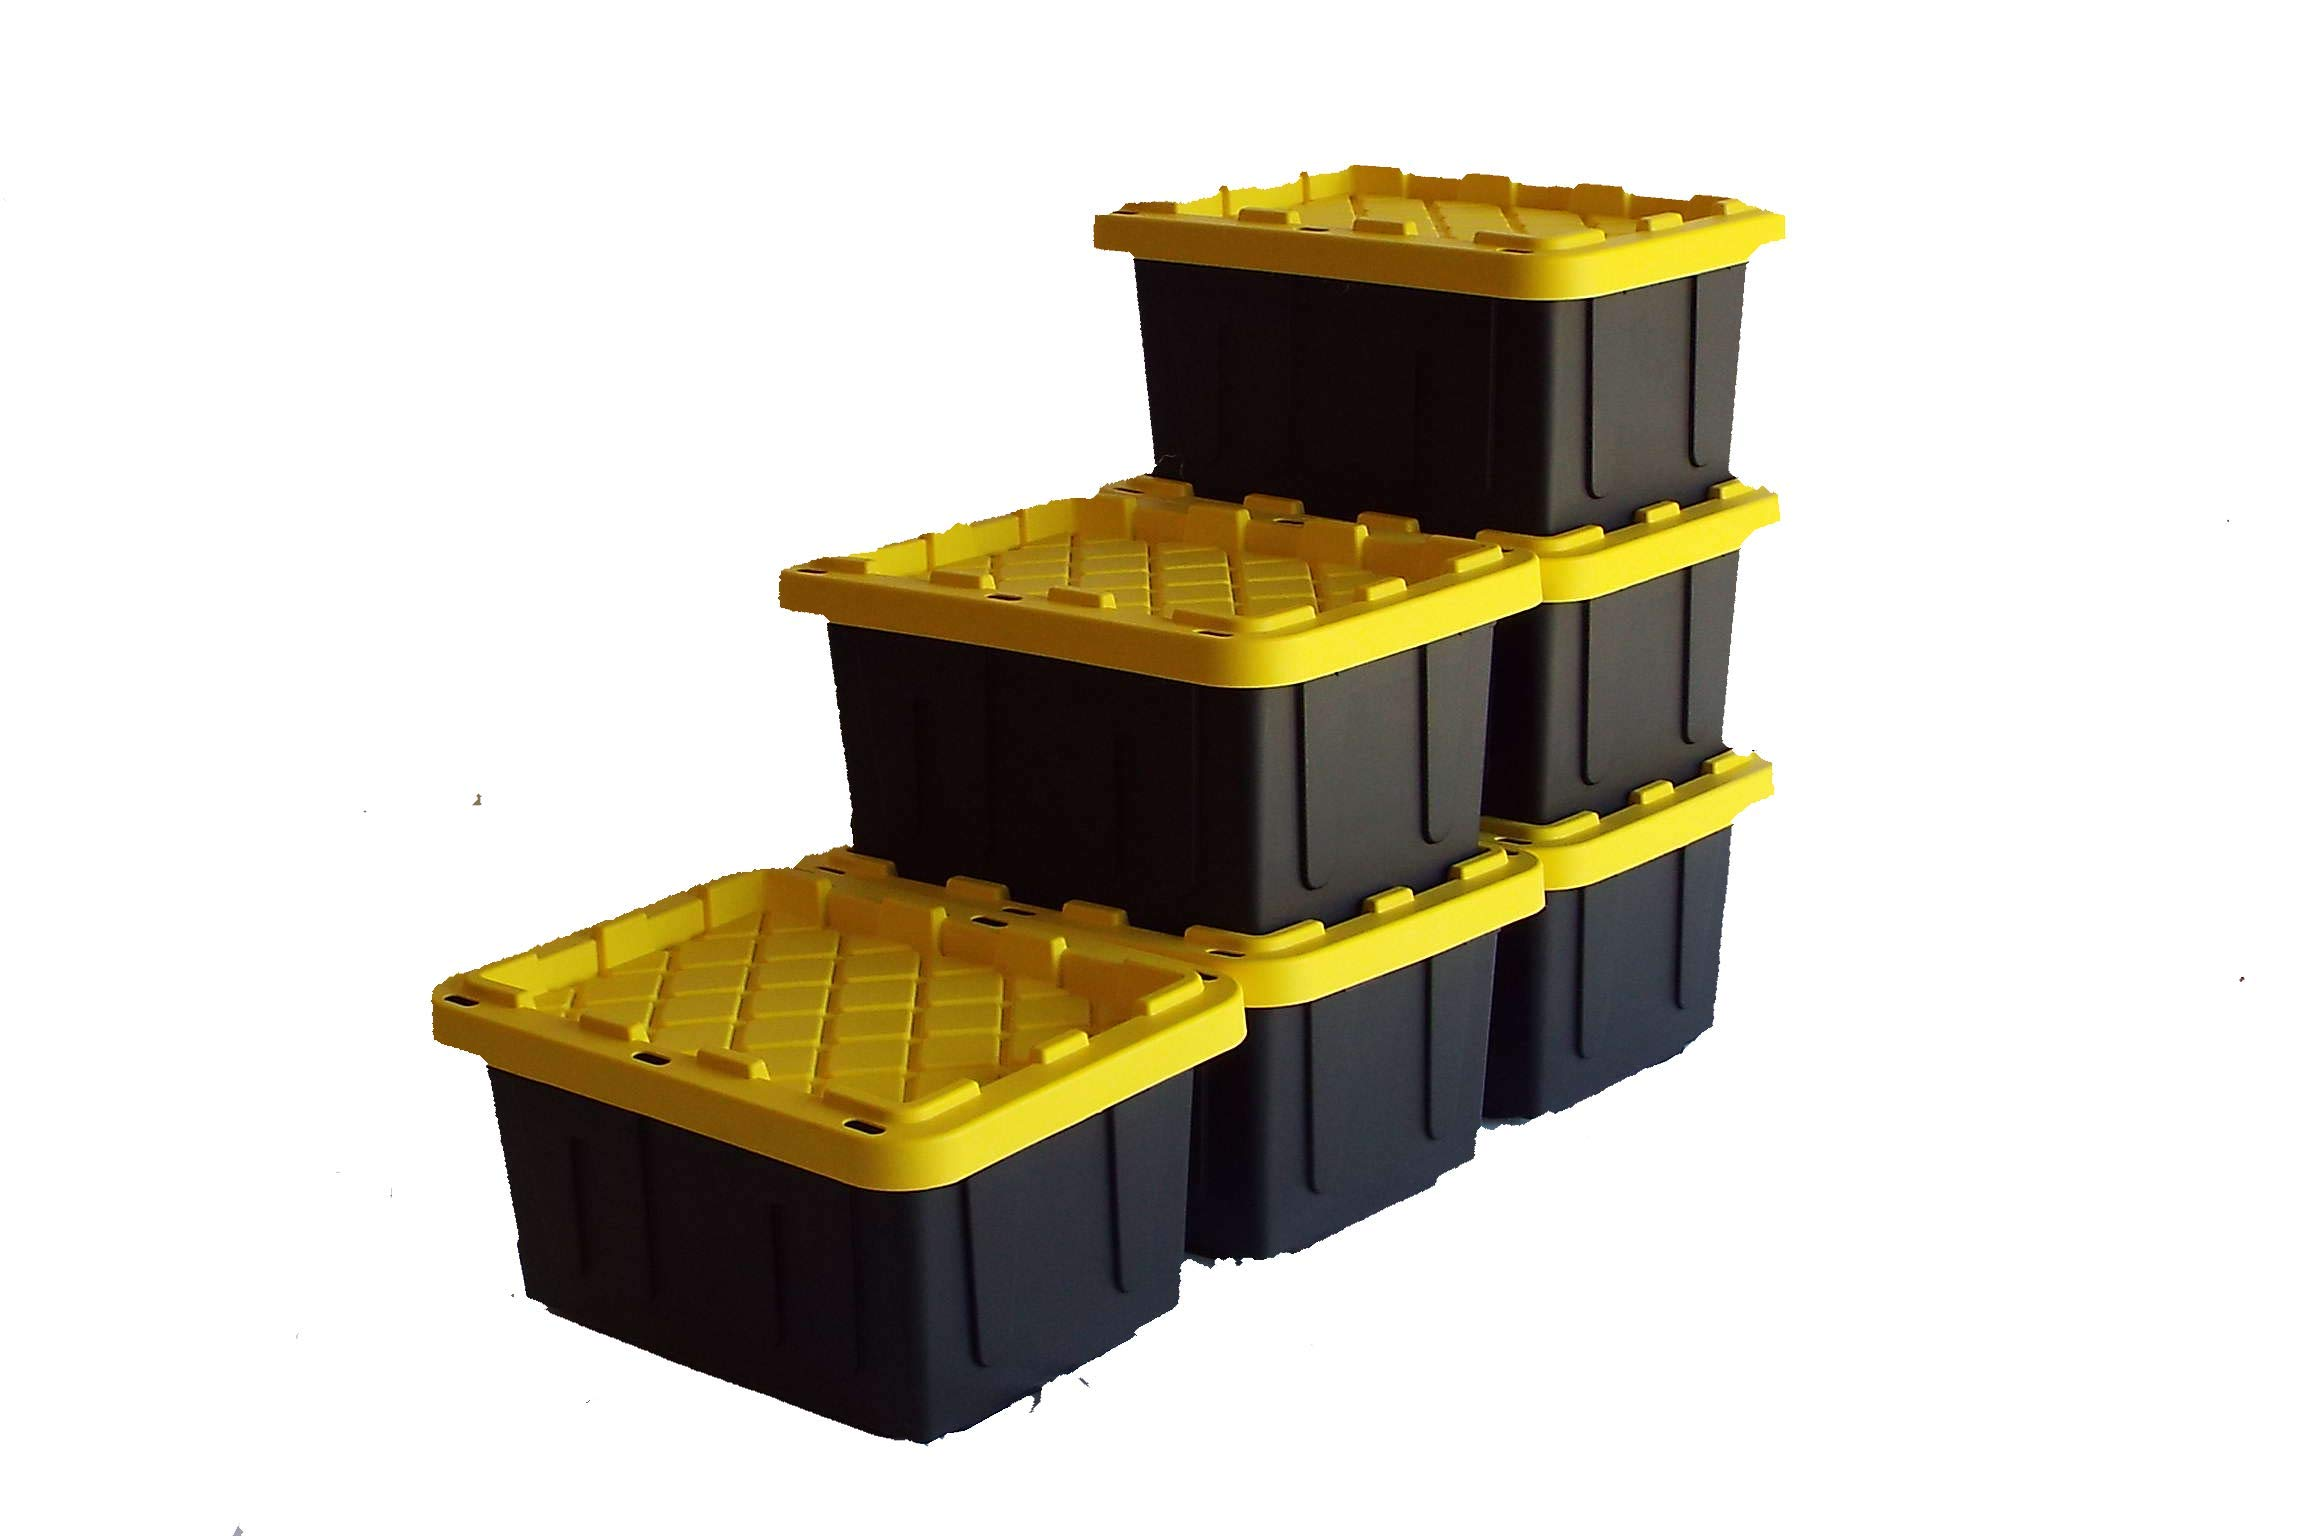 SAFARI USA 5 gallon Heavy Duty Storage Box/Tote With Lids (6 Pack, MADE IN THE USA, 20 Quart, 16''x12''X8.5'') Strong & Stackable Plastic Storage Bins for Under Bed, Garage, Home, Beach, Clothes & More! by Safari USA